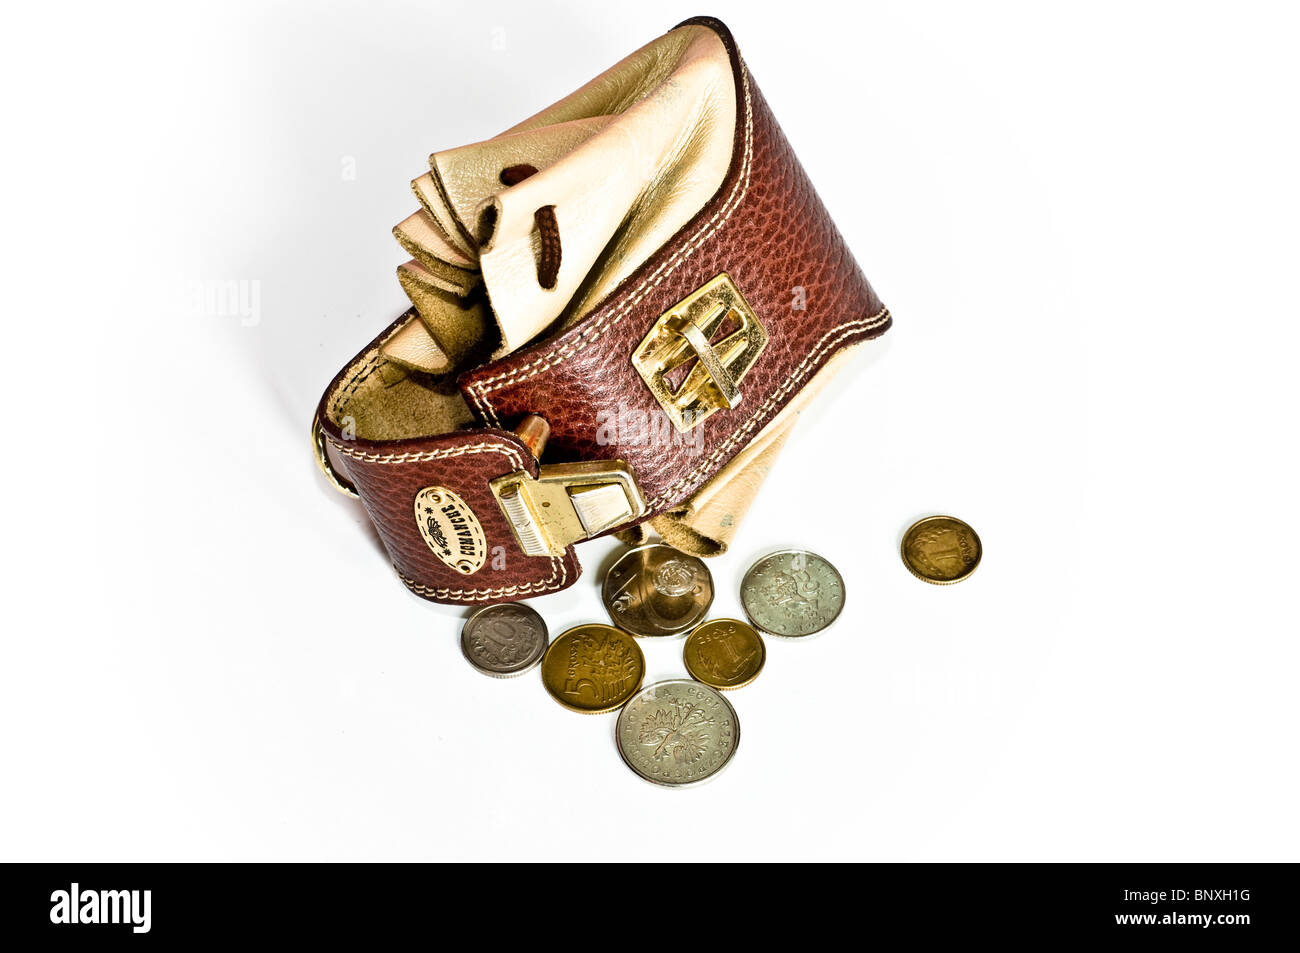 Leather pouch with money isolated on white background - Stock Image